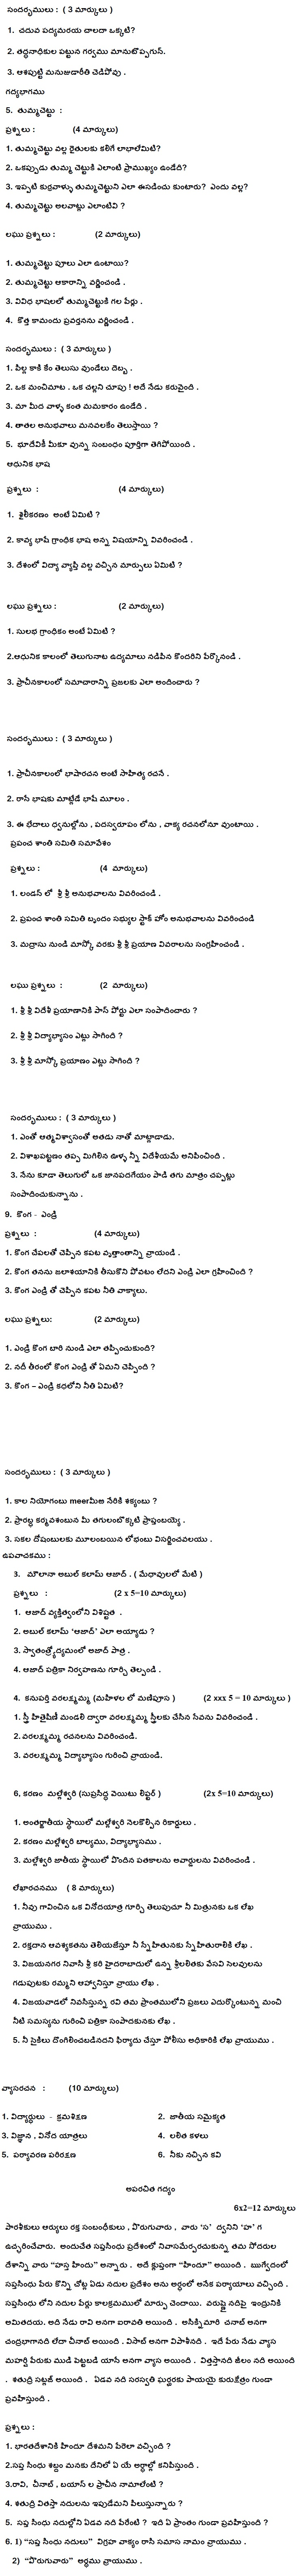 CBSE Class 9 Question Bank - Telugu